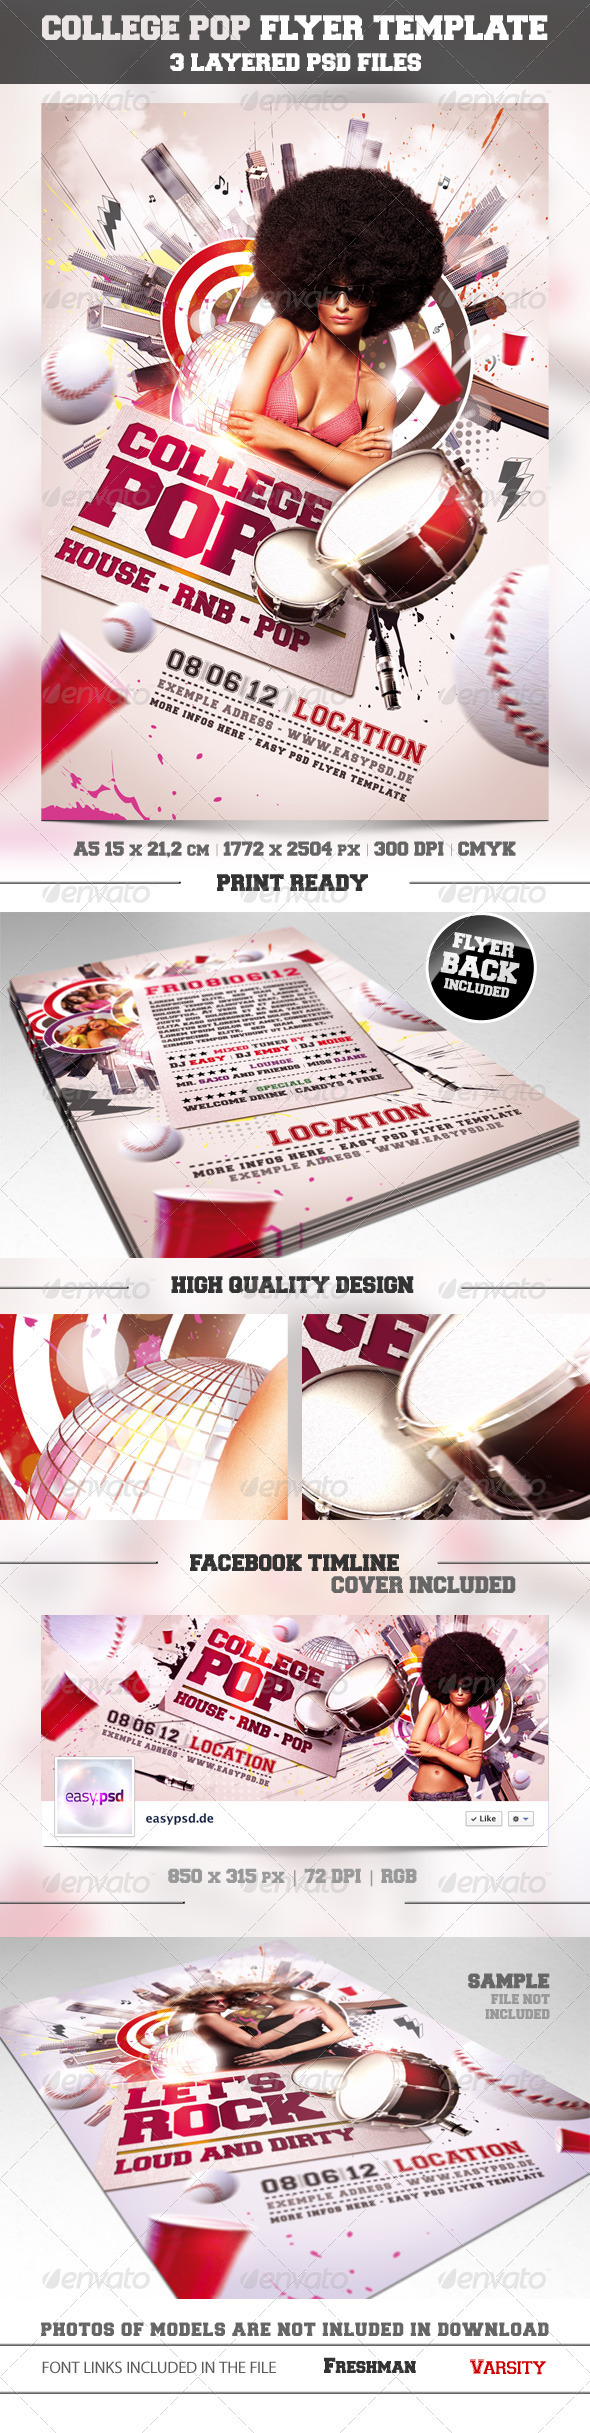 GraphicRiver College Pop Flyer Template 2246693